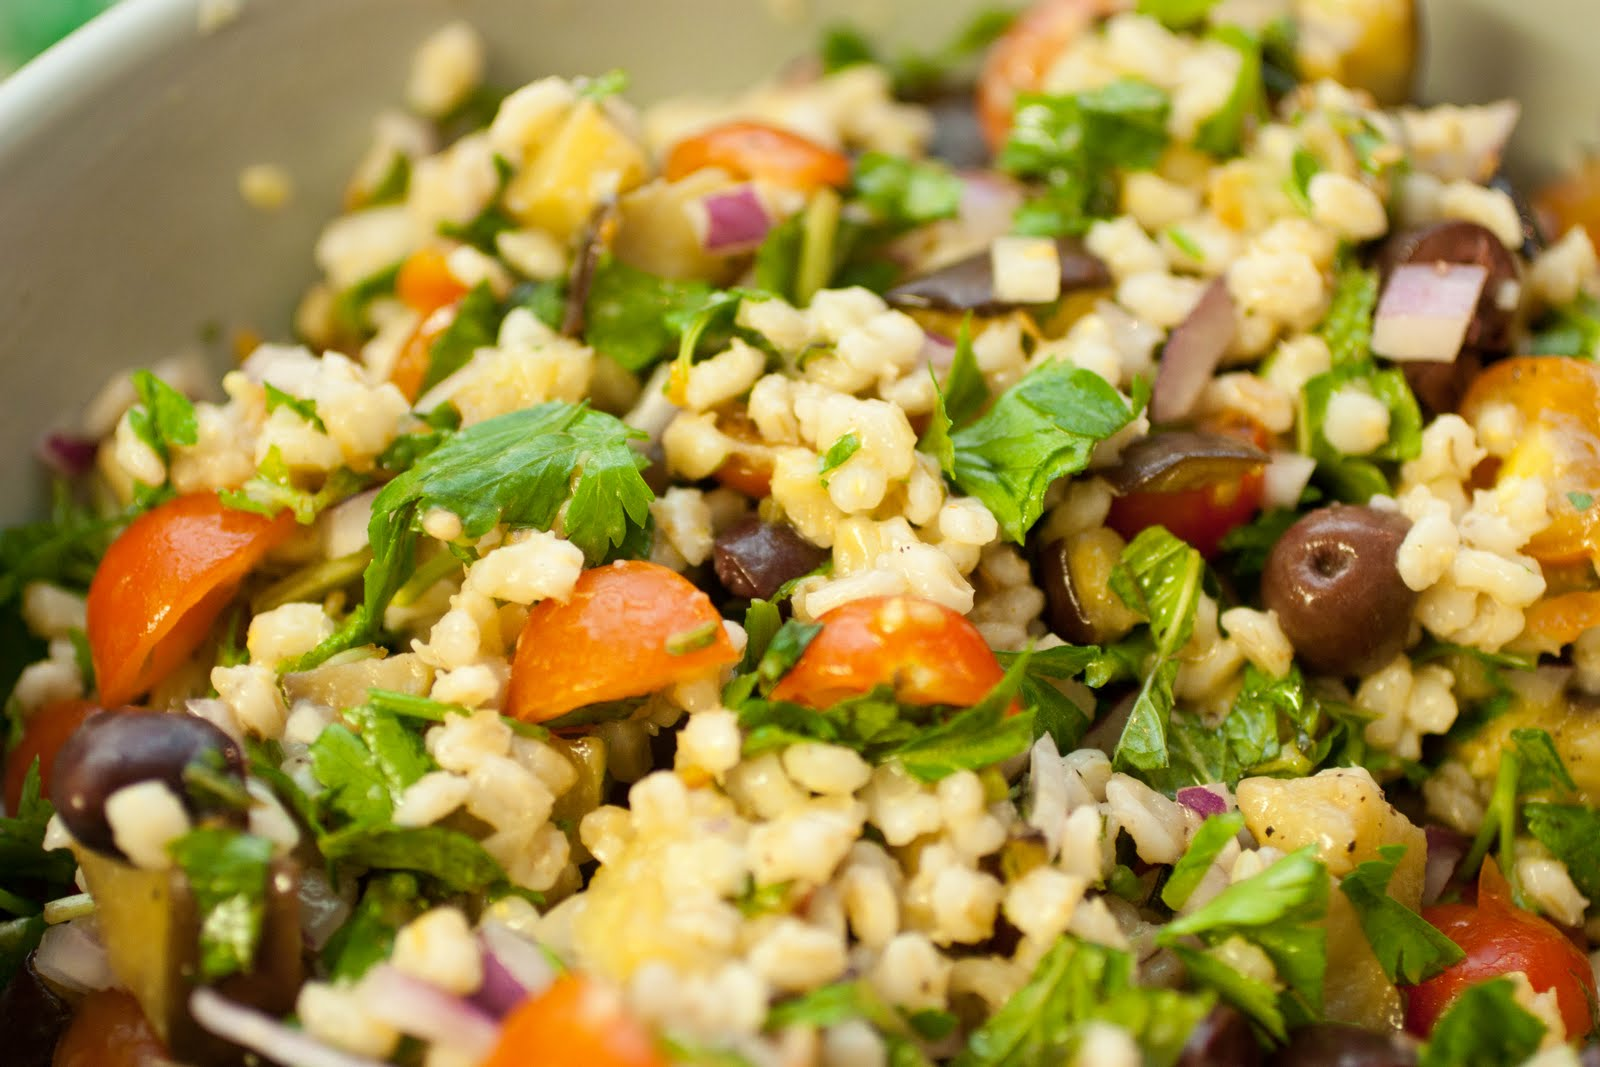 Picture Perfect Passion Phood: Mediterranean Eggplant and Barley Salad